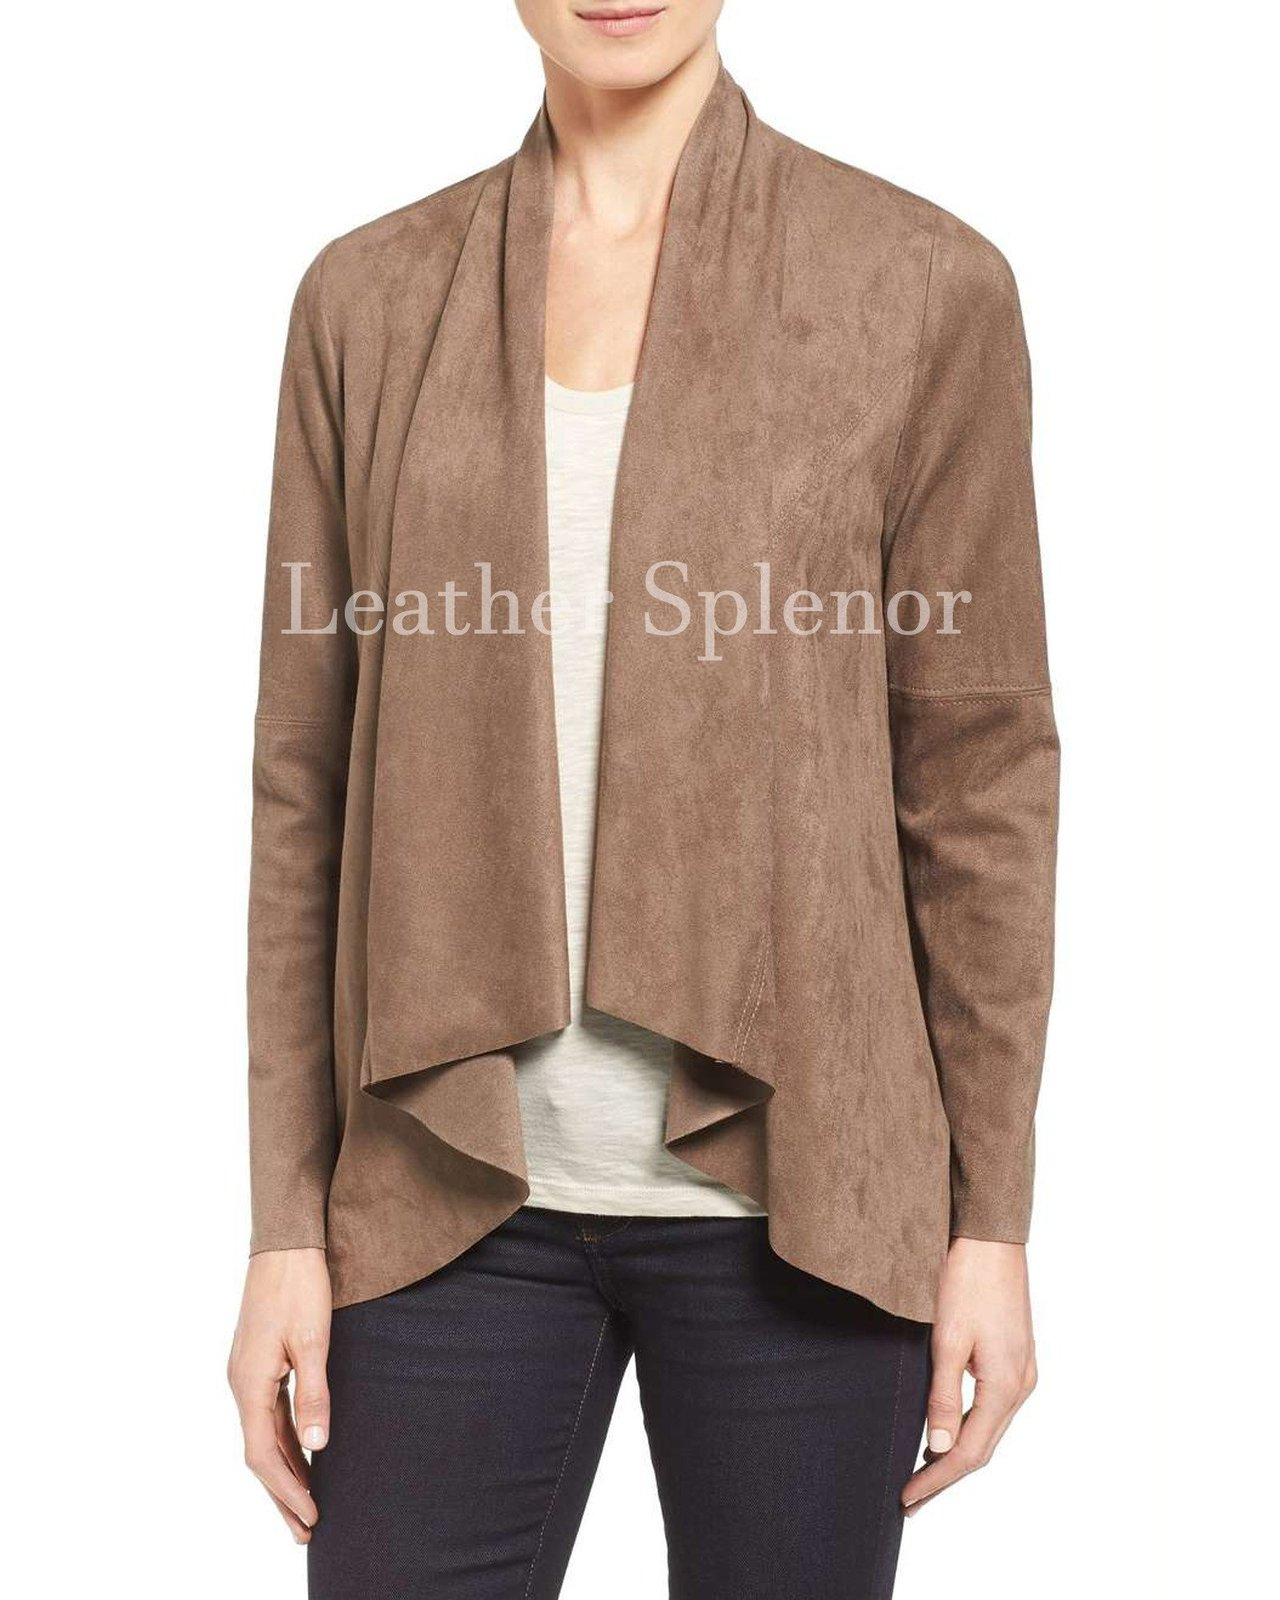 Draped Style Women Suede Leather Jacket